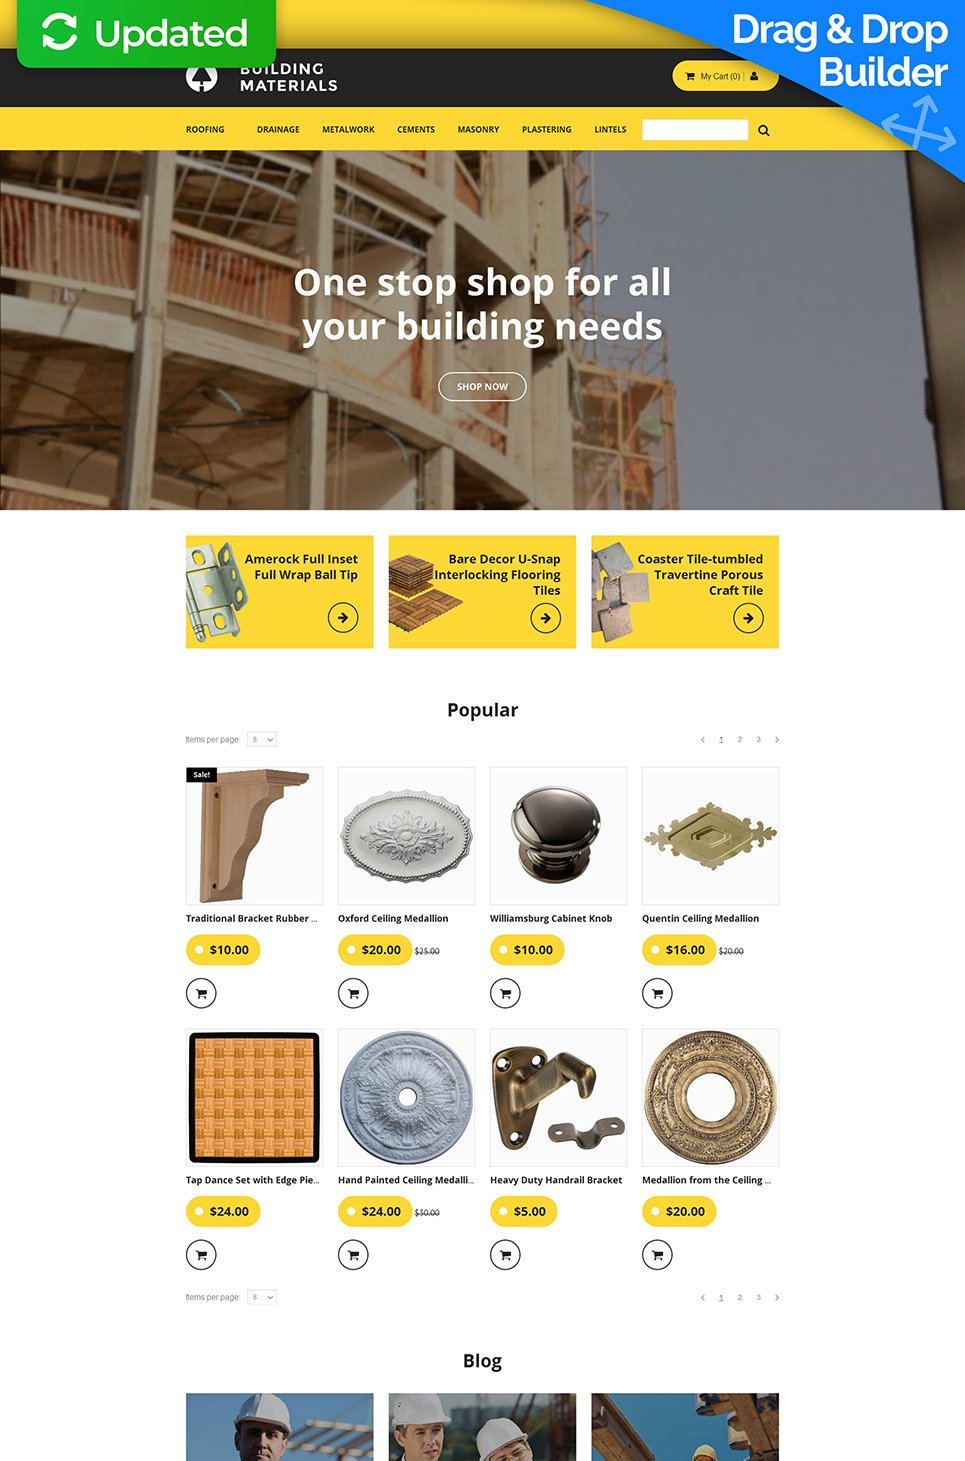 Building Materials Ecommerce Website Template - image